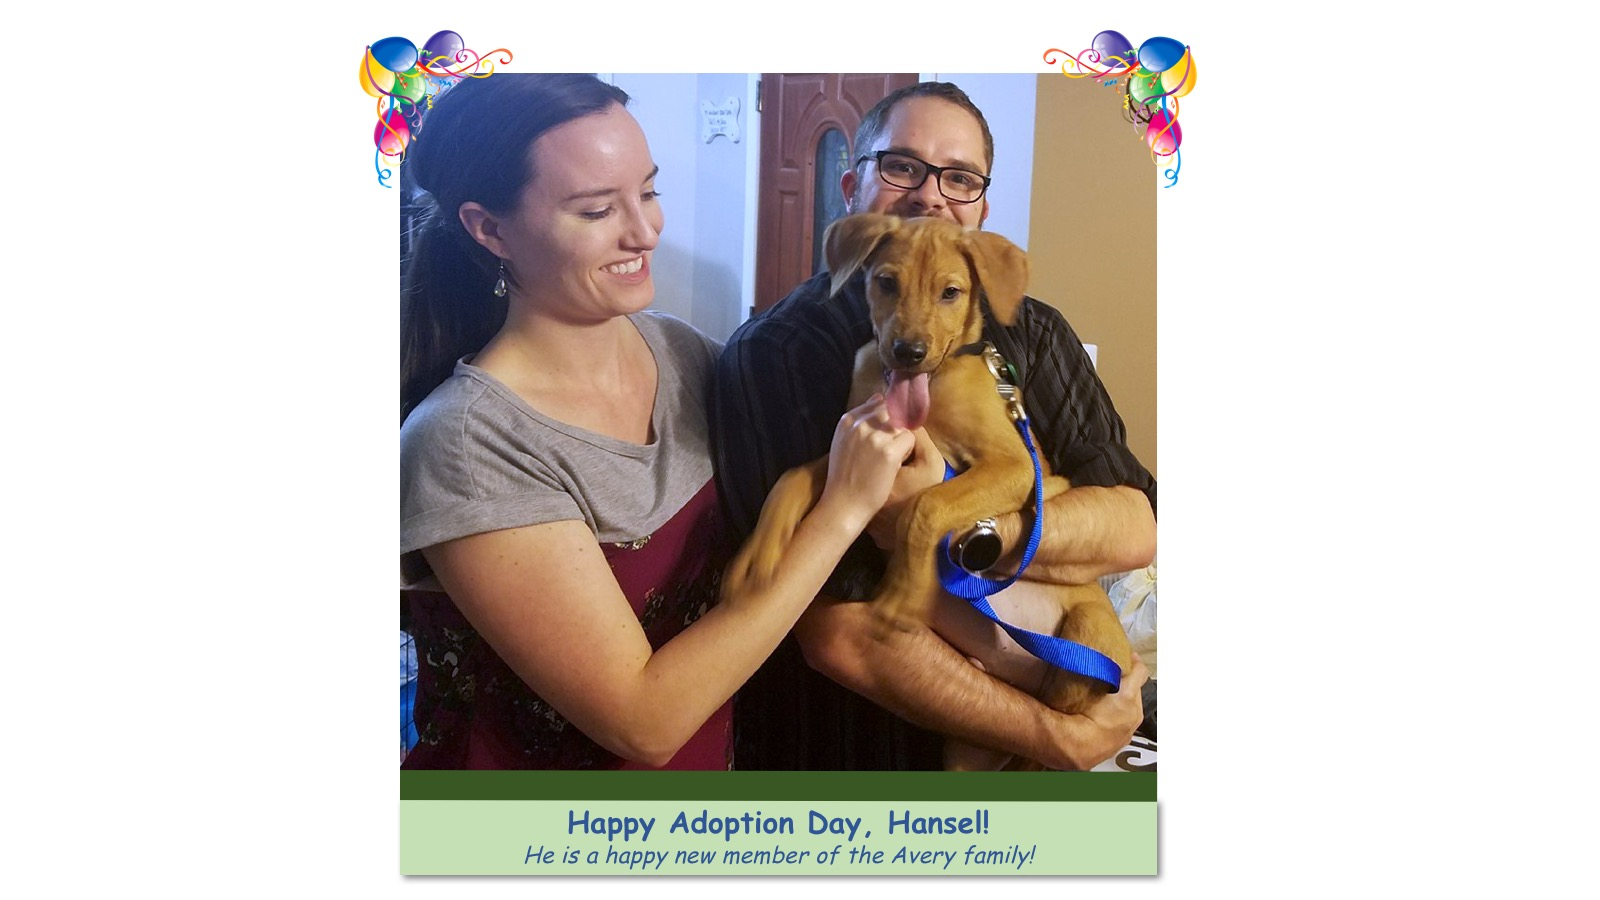 Hansel_Adoption_photo.jpg